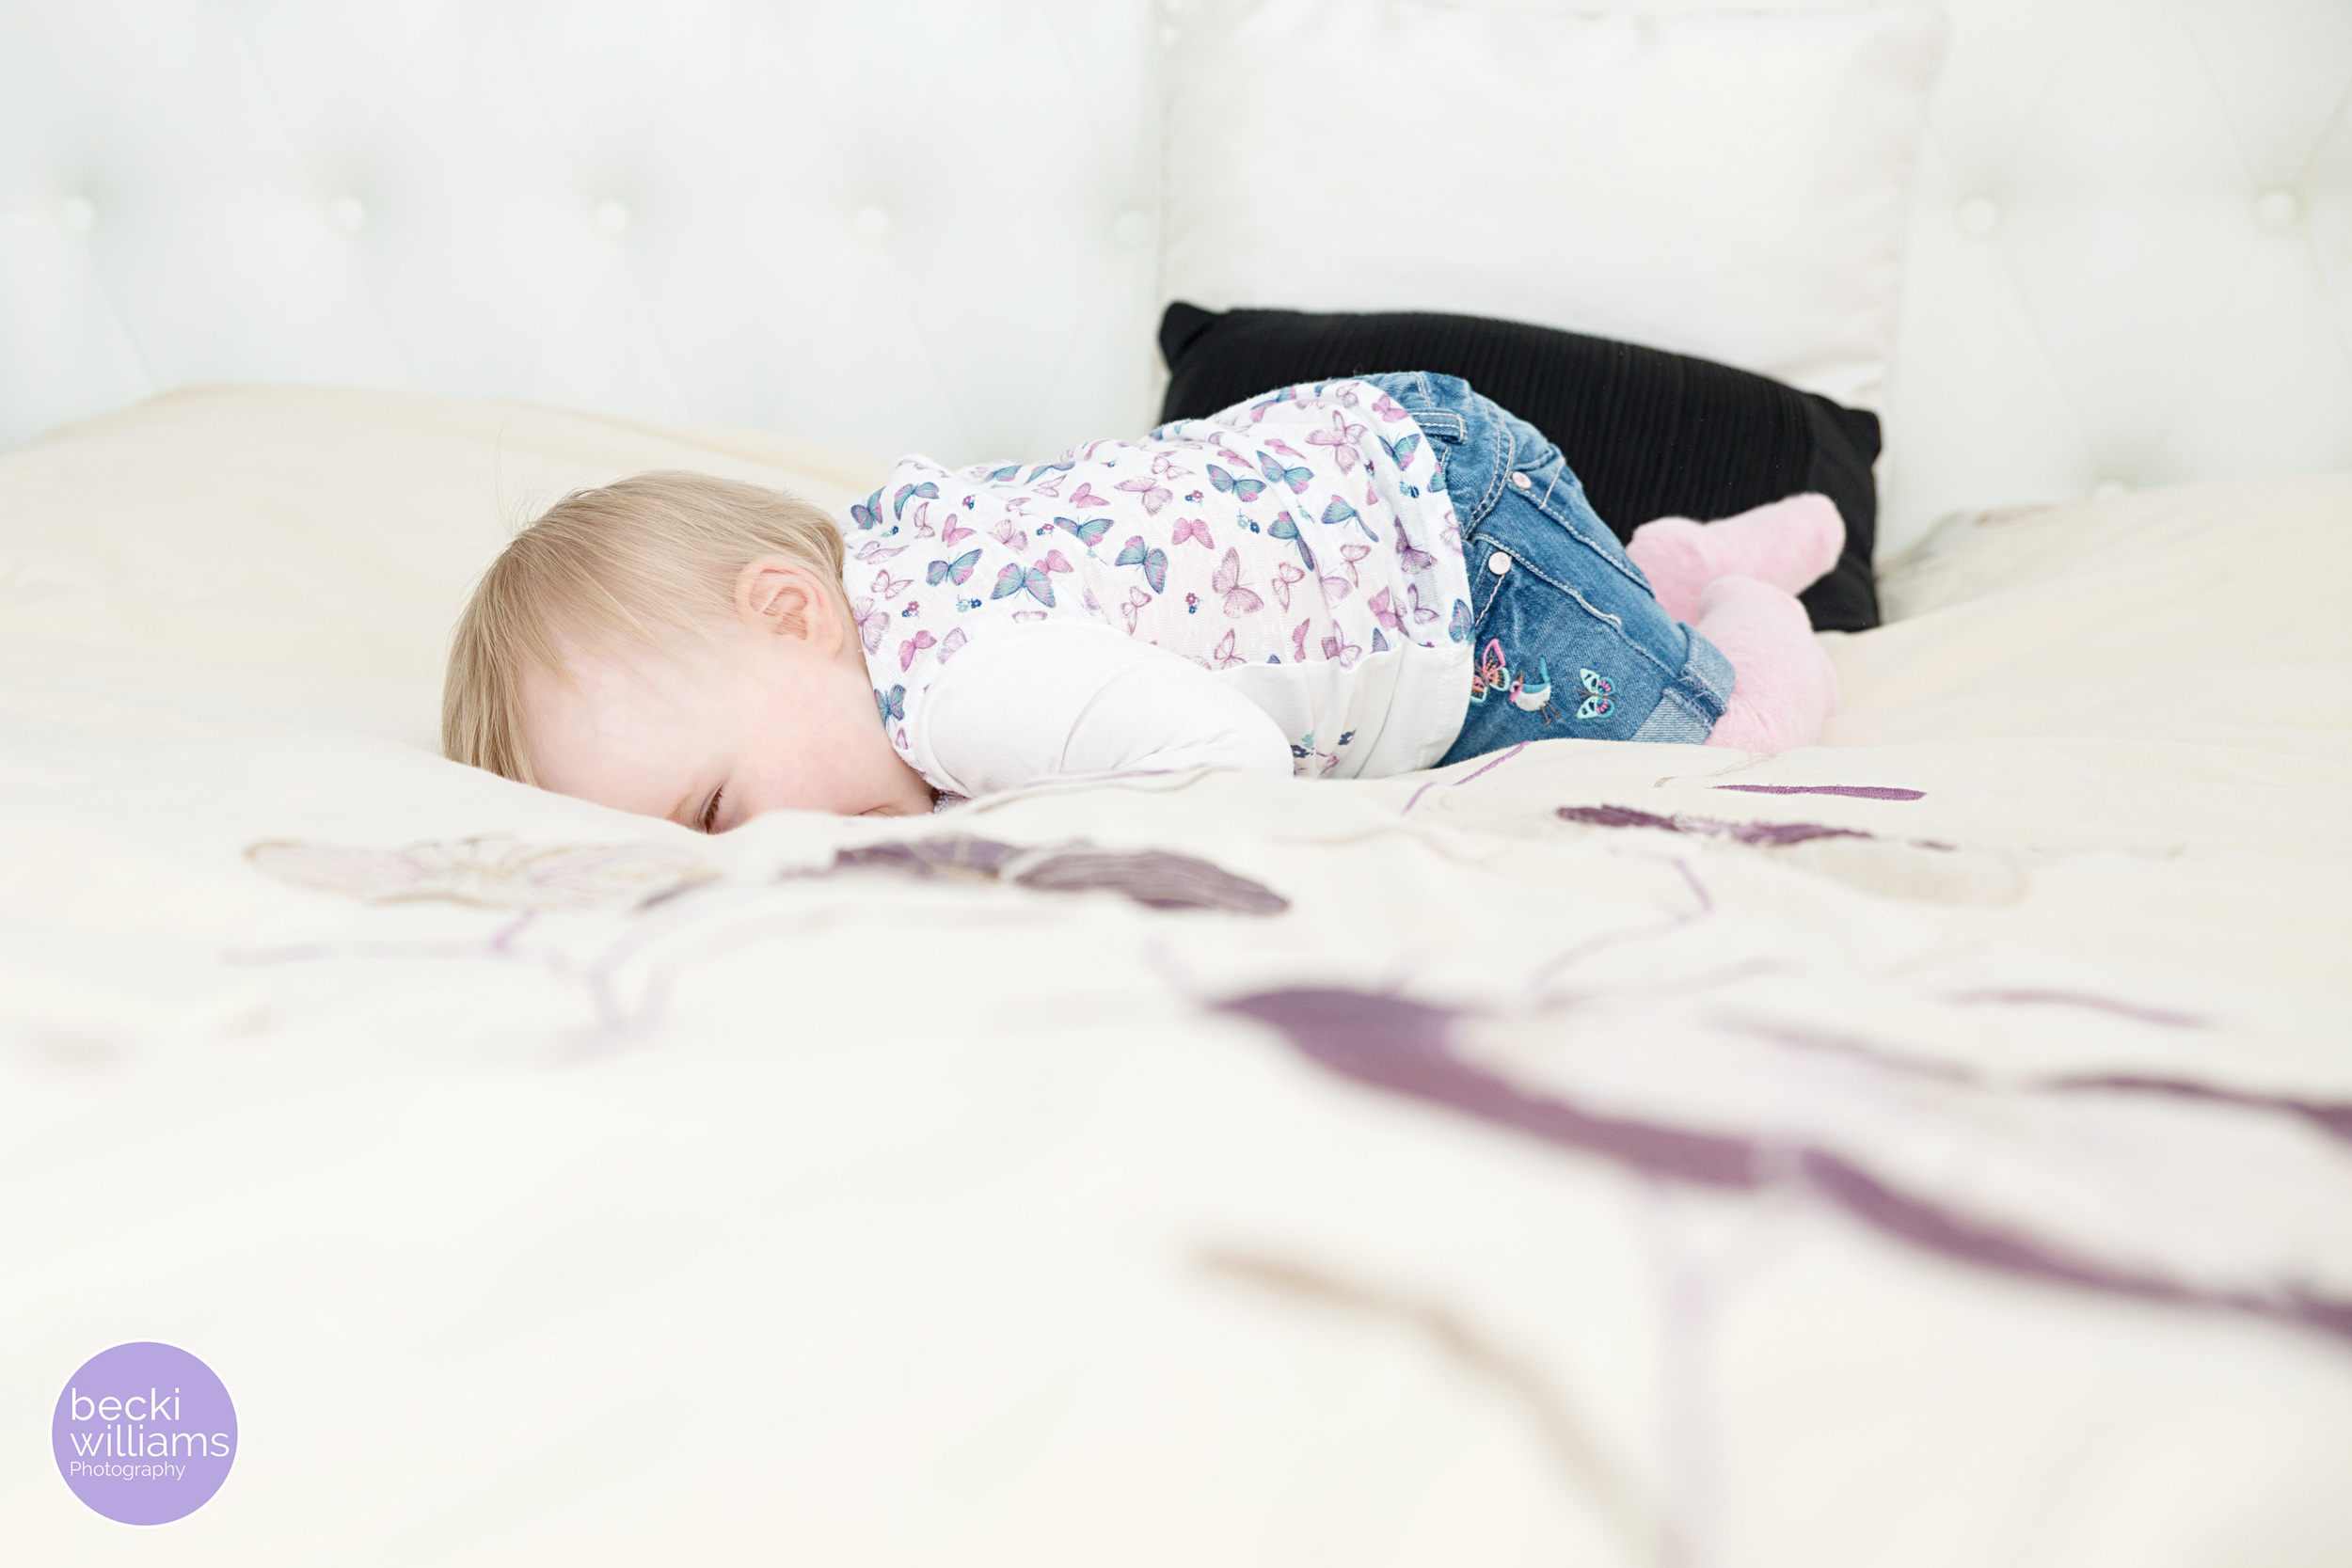 Baby-photography-hemel-hempstead-fun-on-bed.jpg